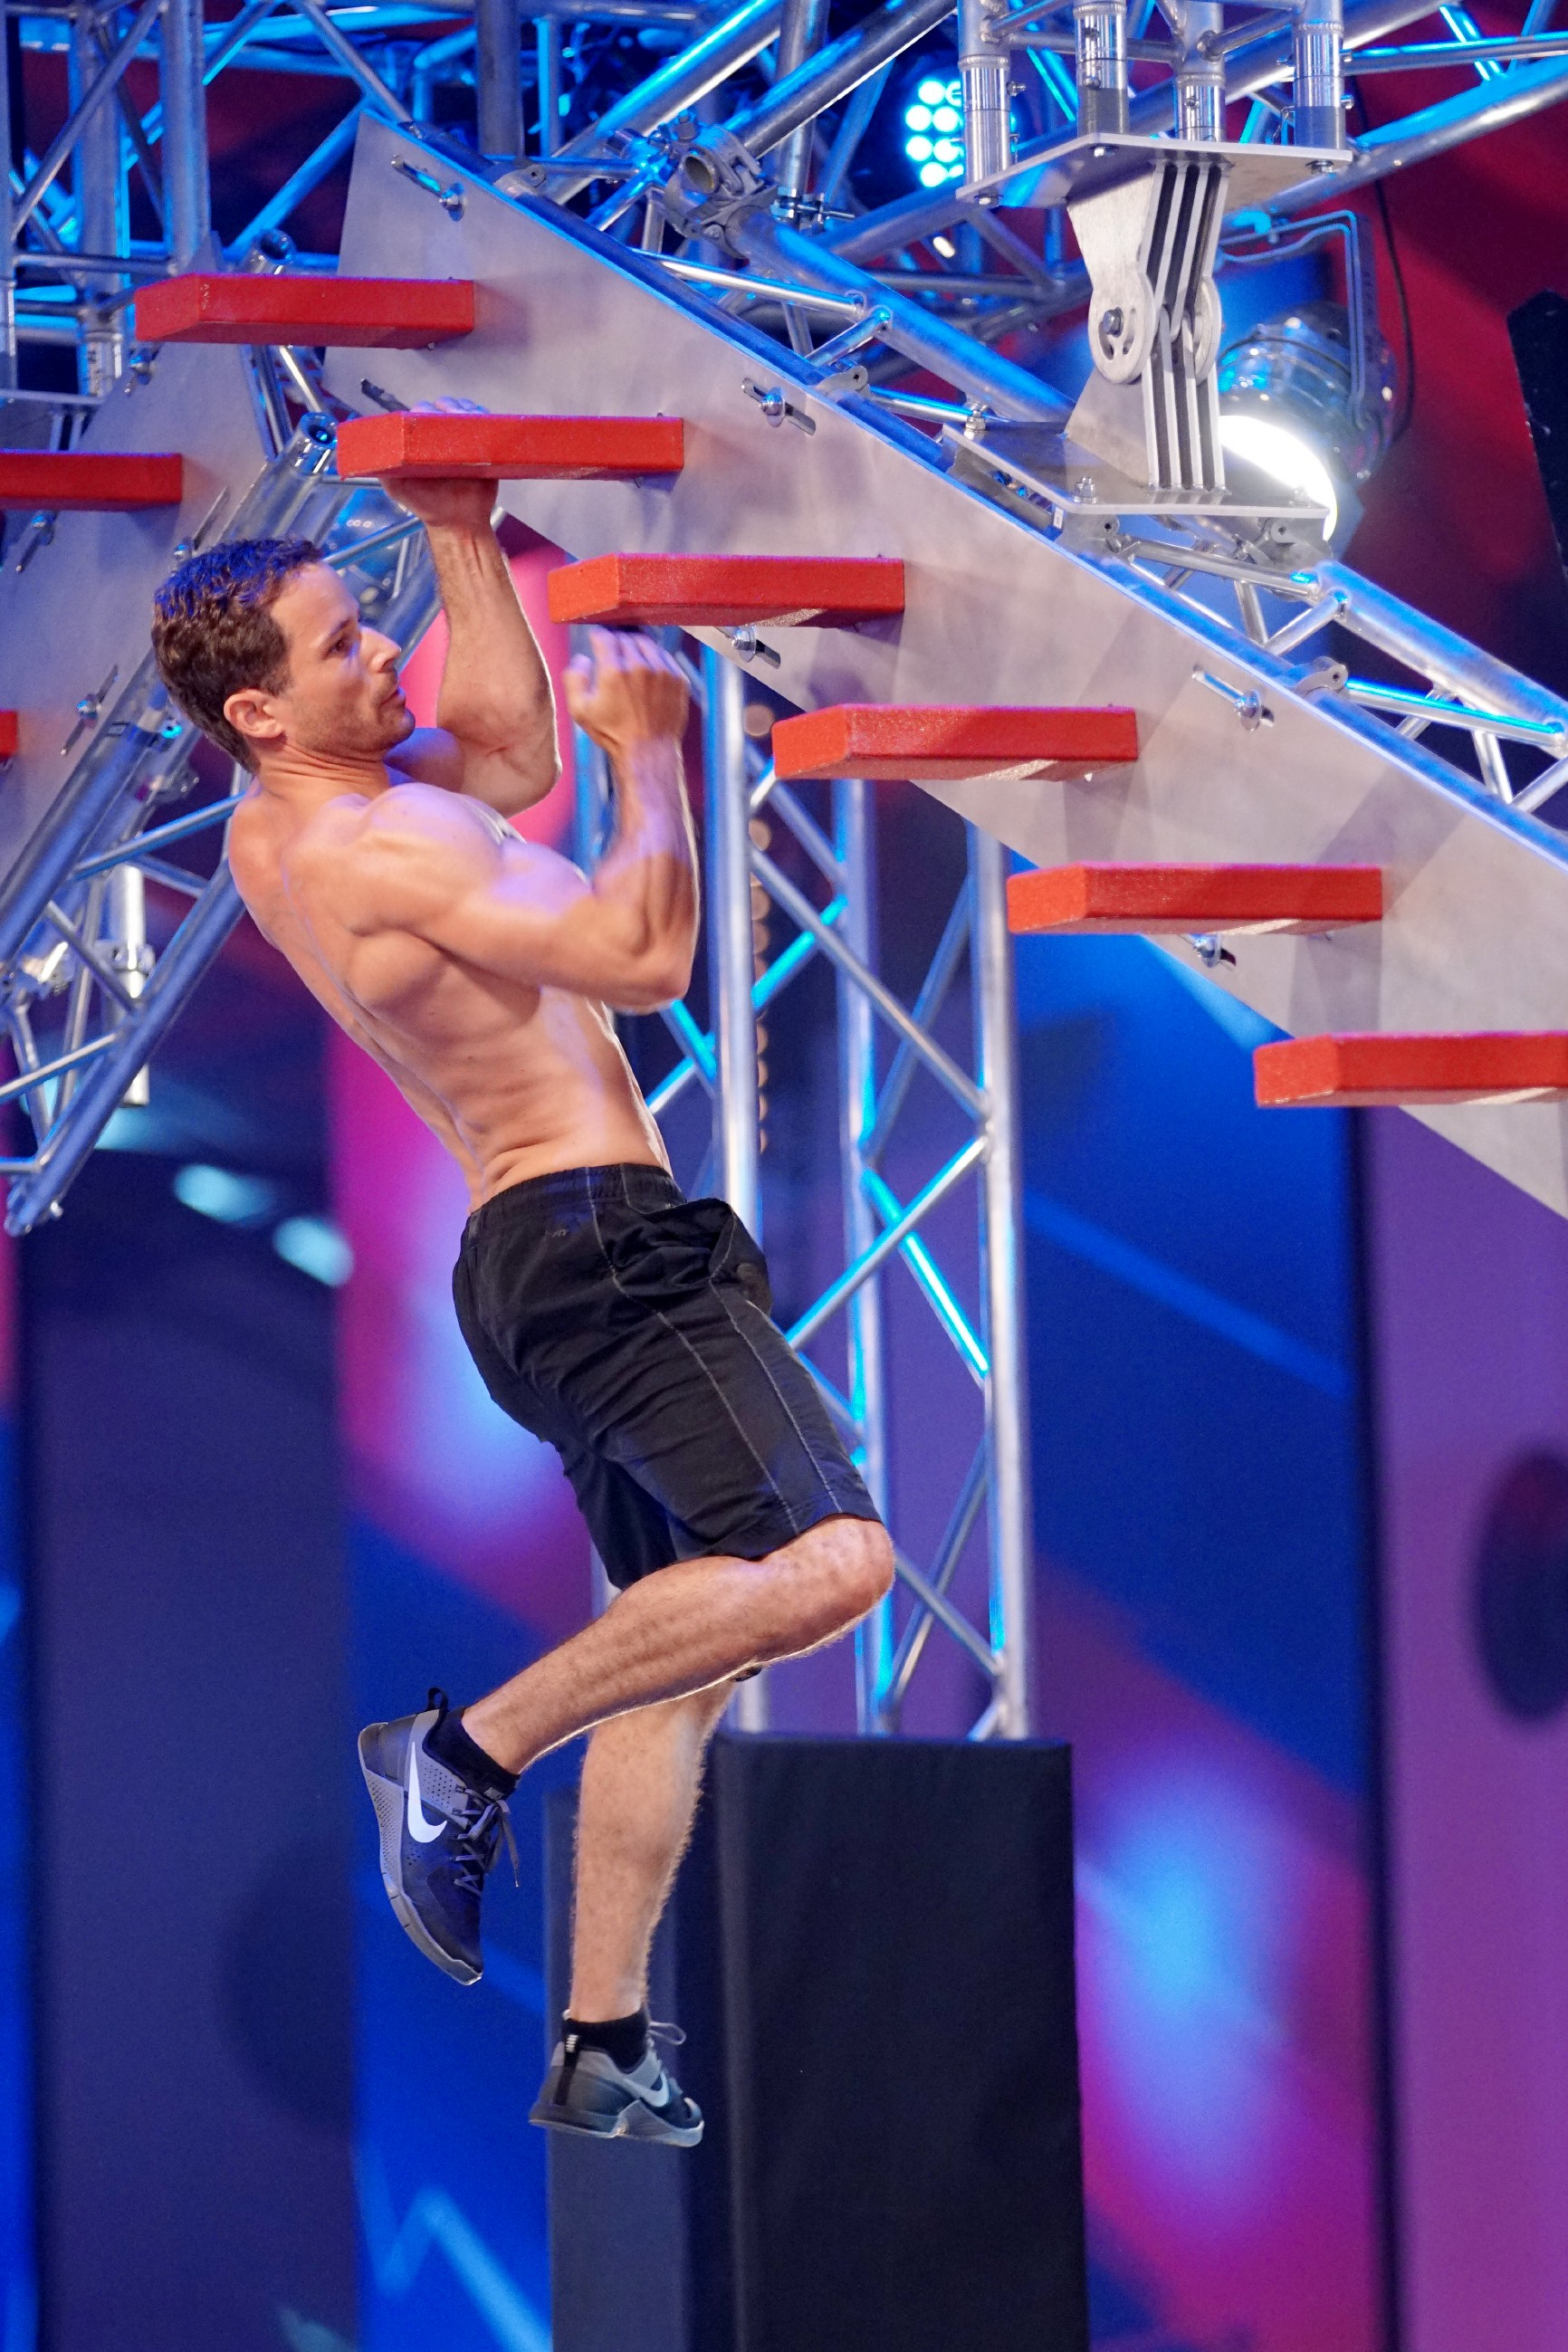 Oct 06,  · You know, he's the guy who took home the first ever American Ninja Warrior championship title and a snazzy million bucks in season seven. (Yes, we know Geoff Britten completed the final climb of the National Finals before Isaac did. And that it's an ongoing debate over who exactly is the first American Ninja Warrior..